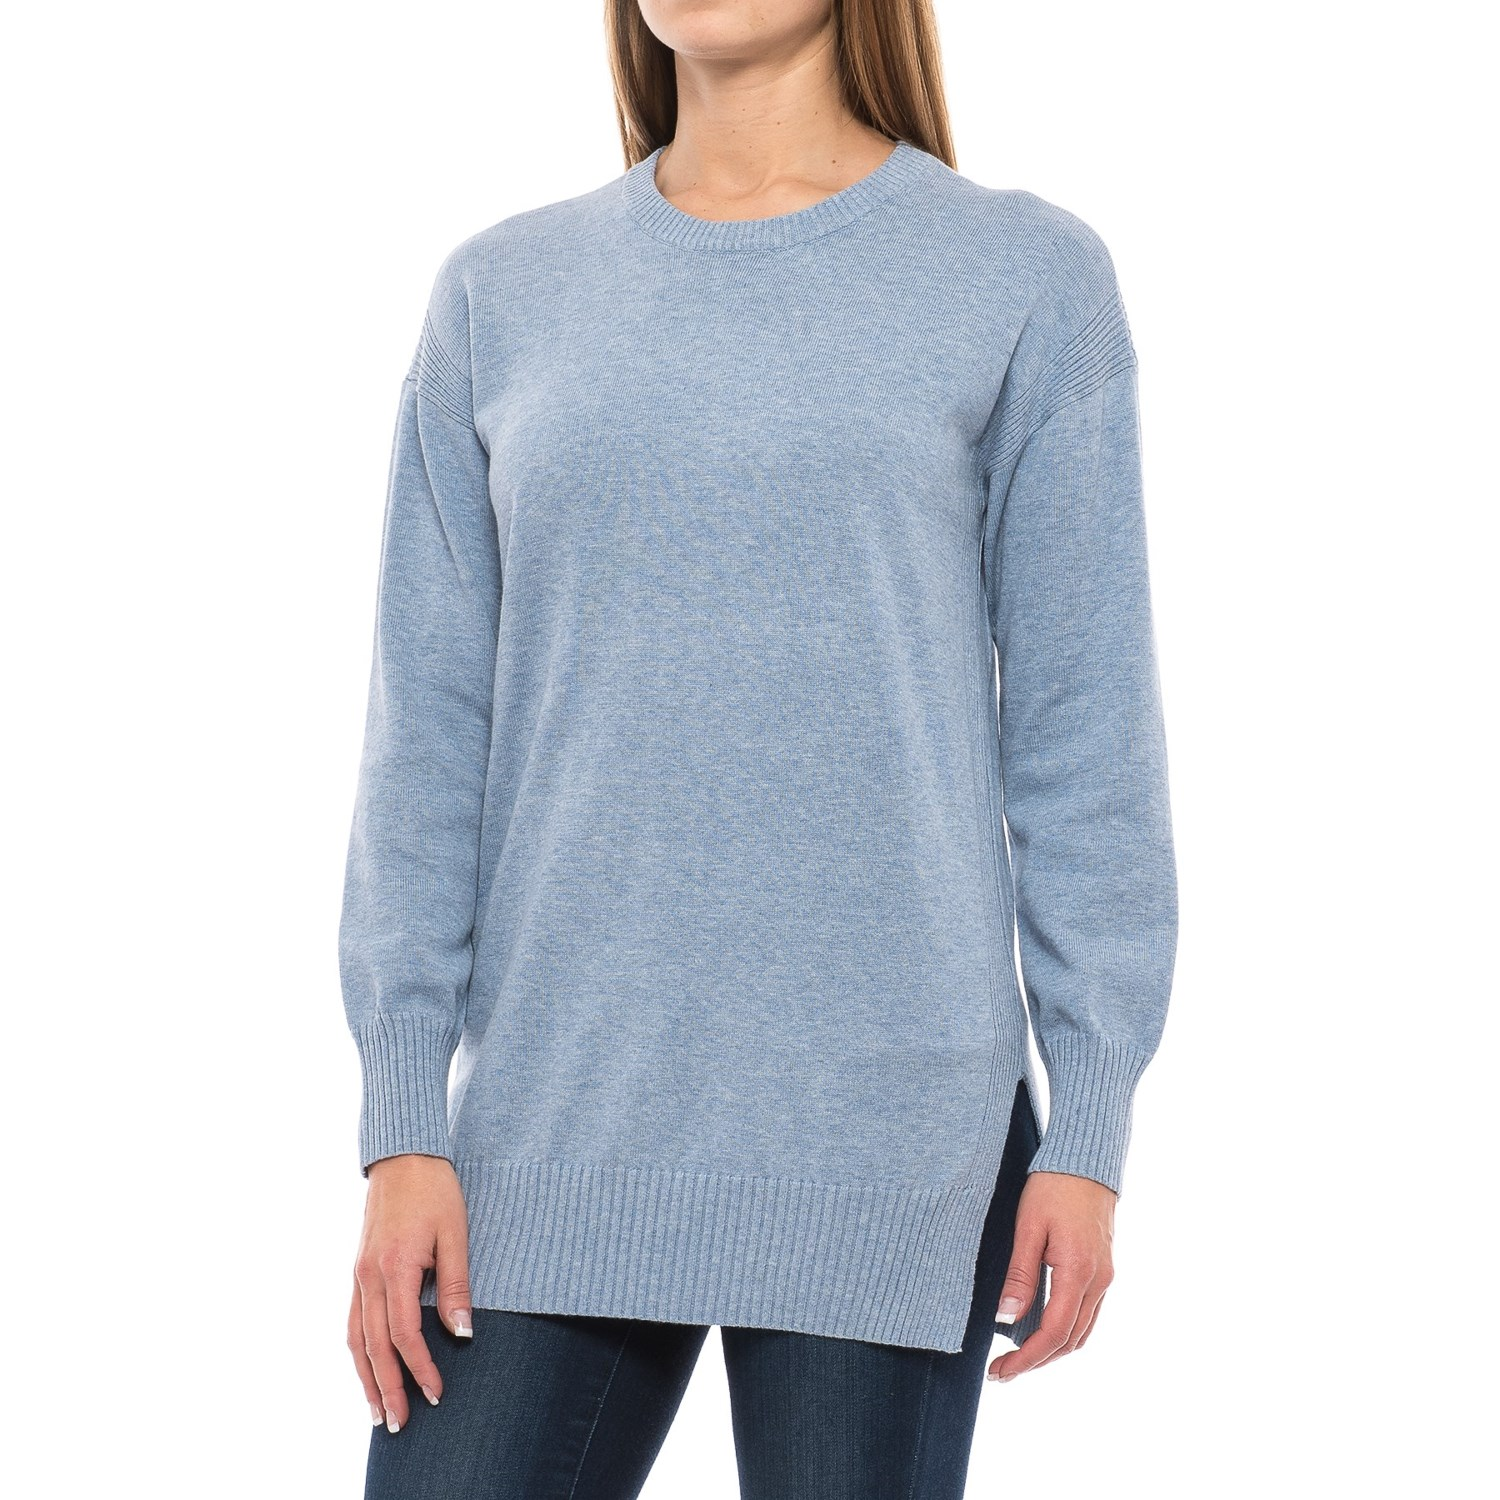 Jeanne Pierre Crew Neck Sweater (For Women) - Save 62%